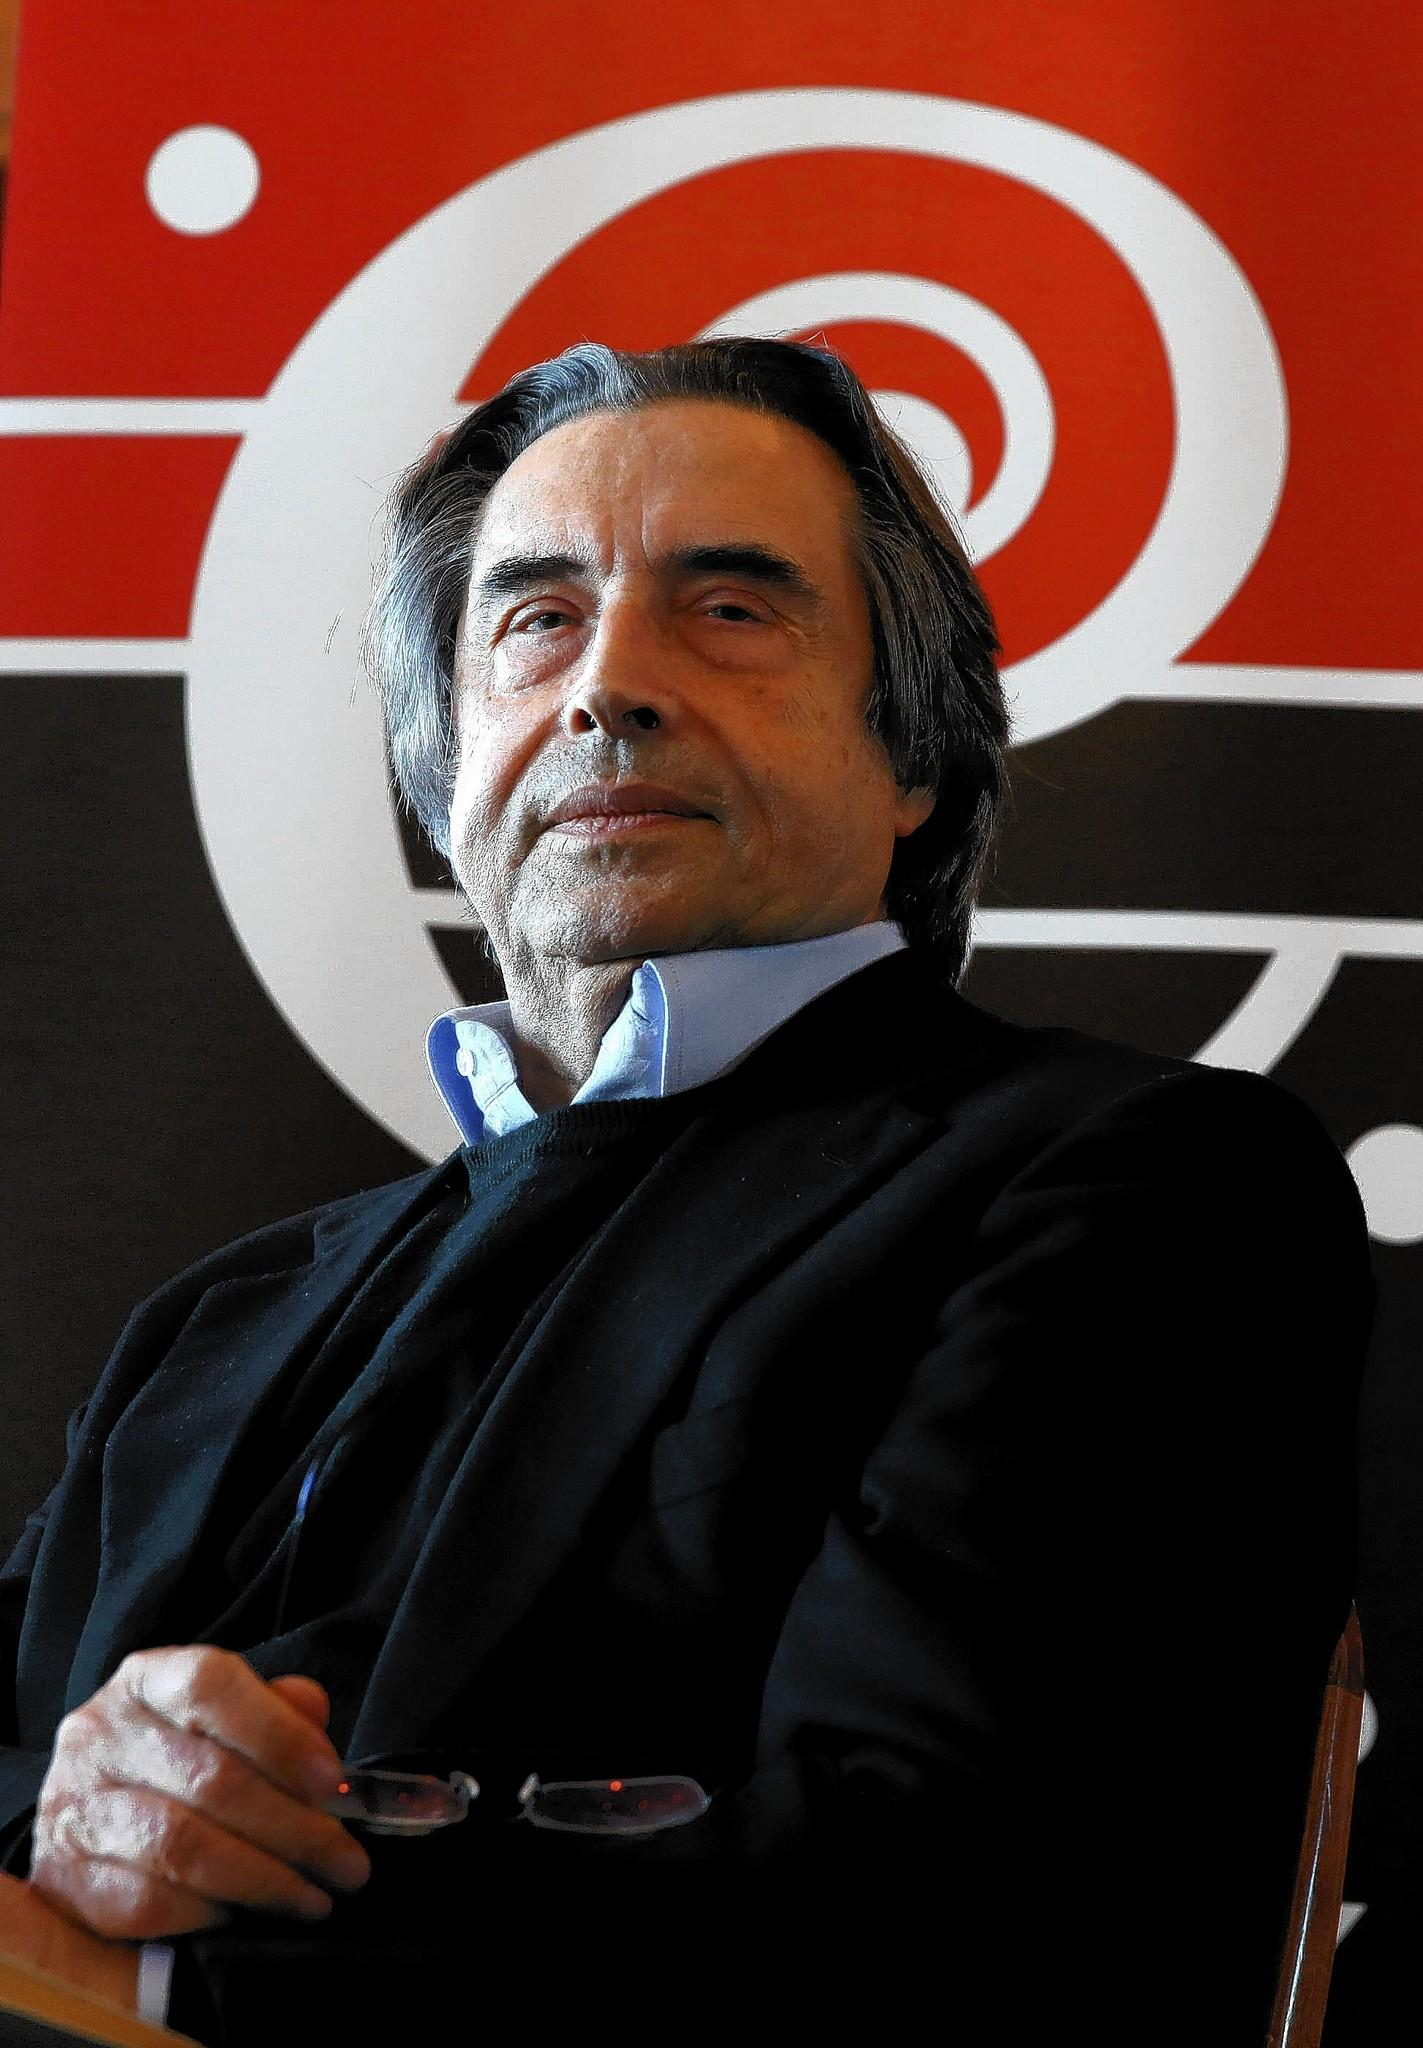 Chicago Symphony Orchestra music director Riccardo Muti makes the announcement of his extended contract during a news conference at the Symphony Center.